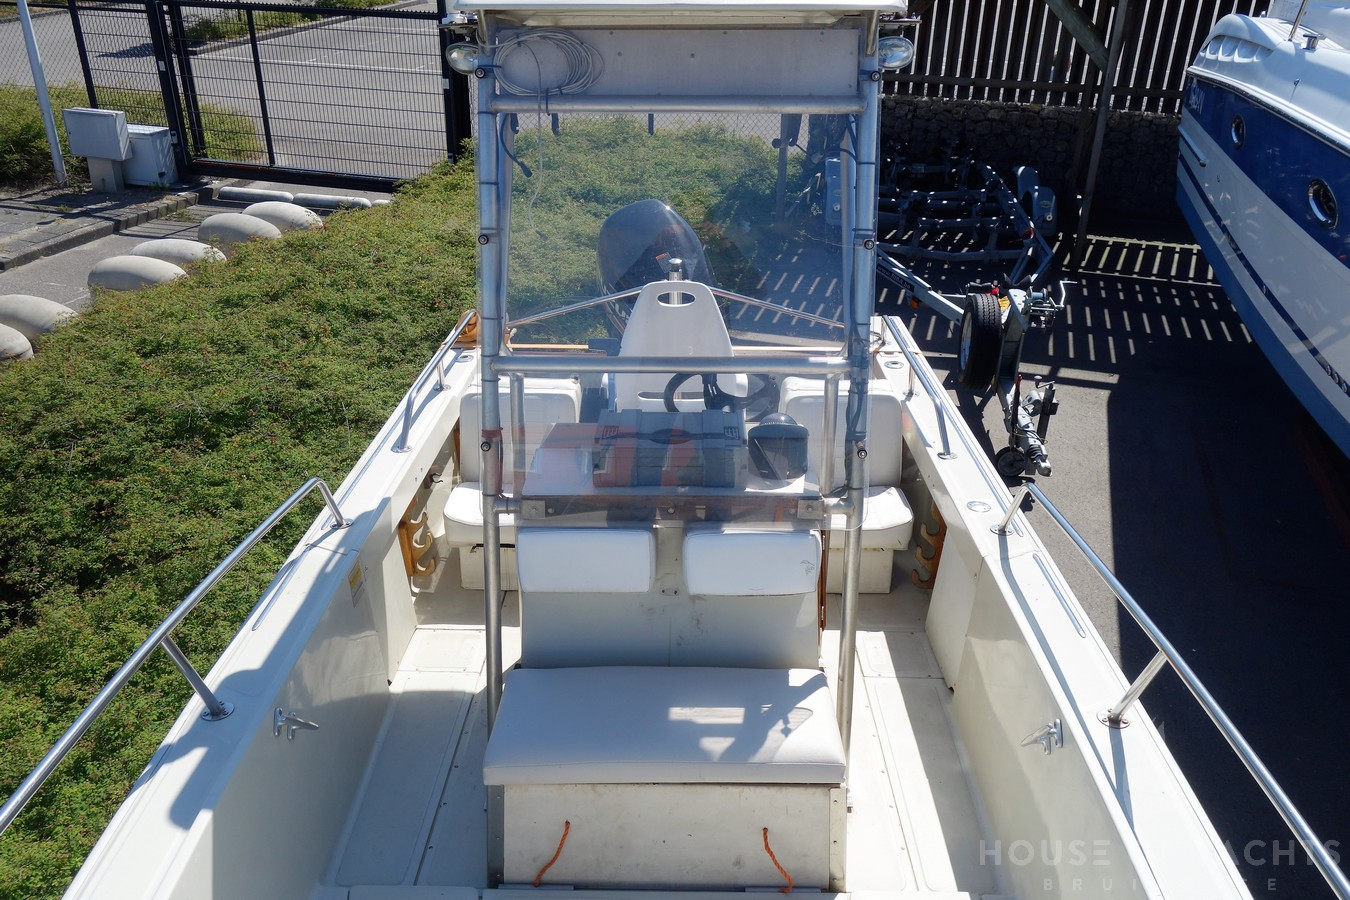 Boston Whaler Outrage 20 - House of Yachts